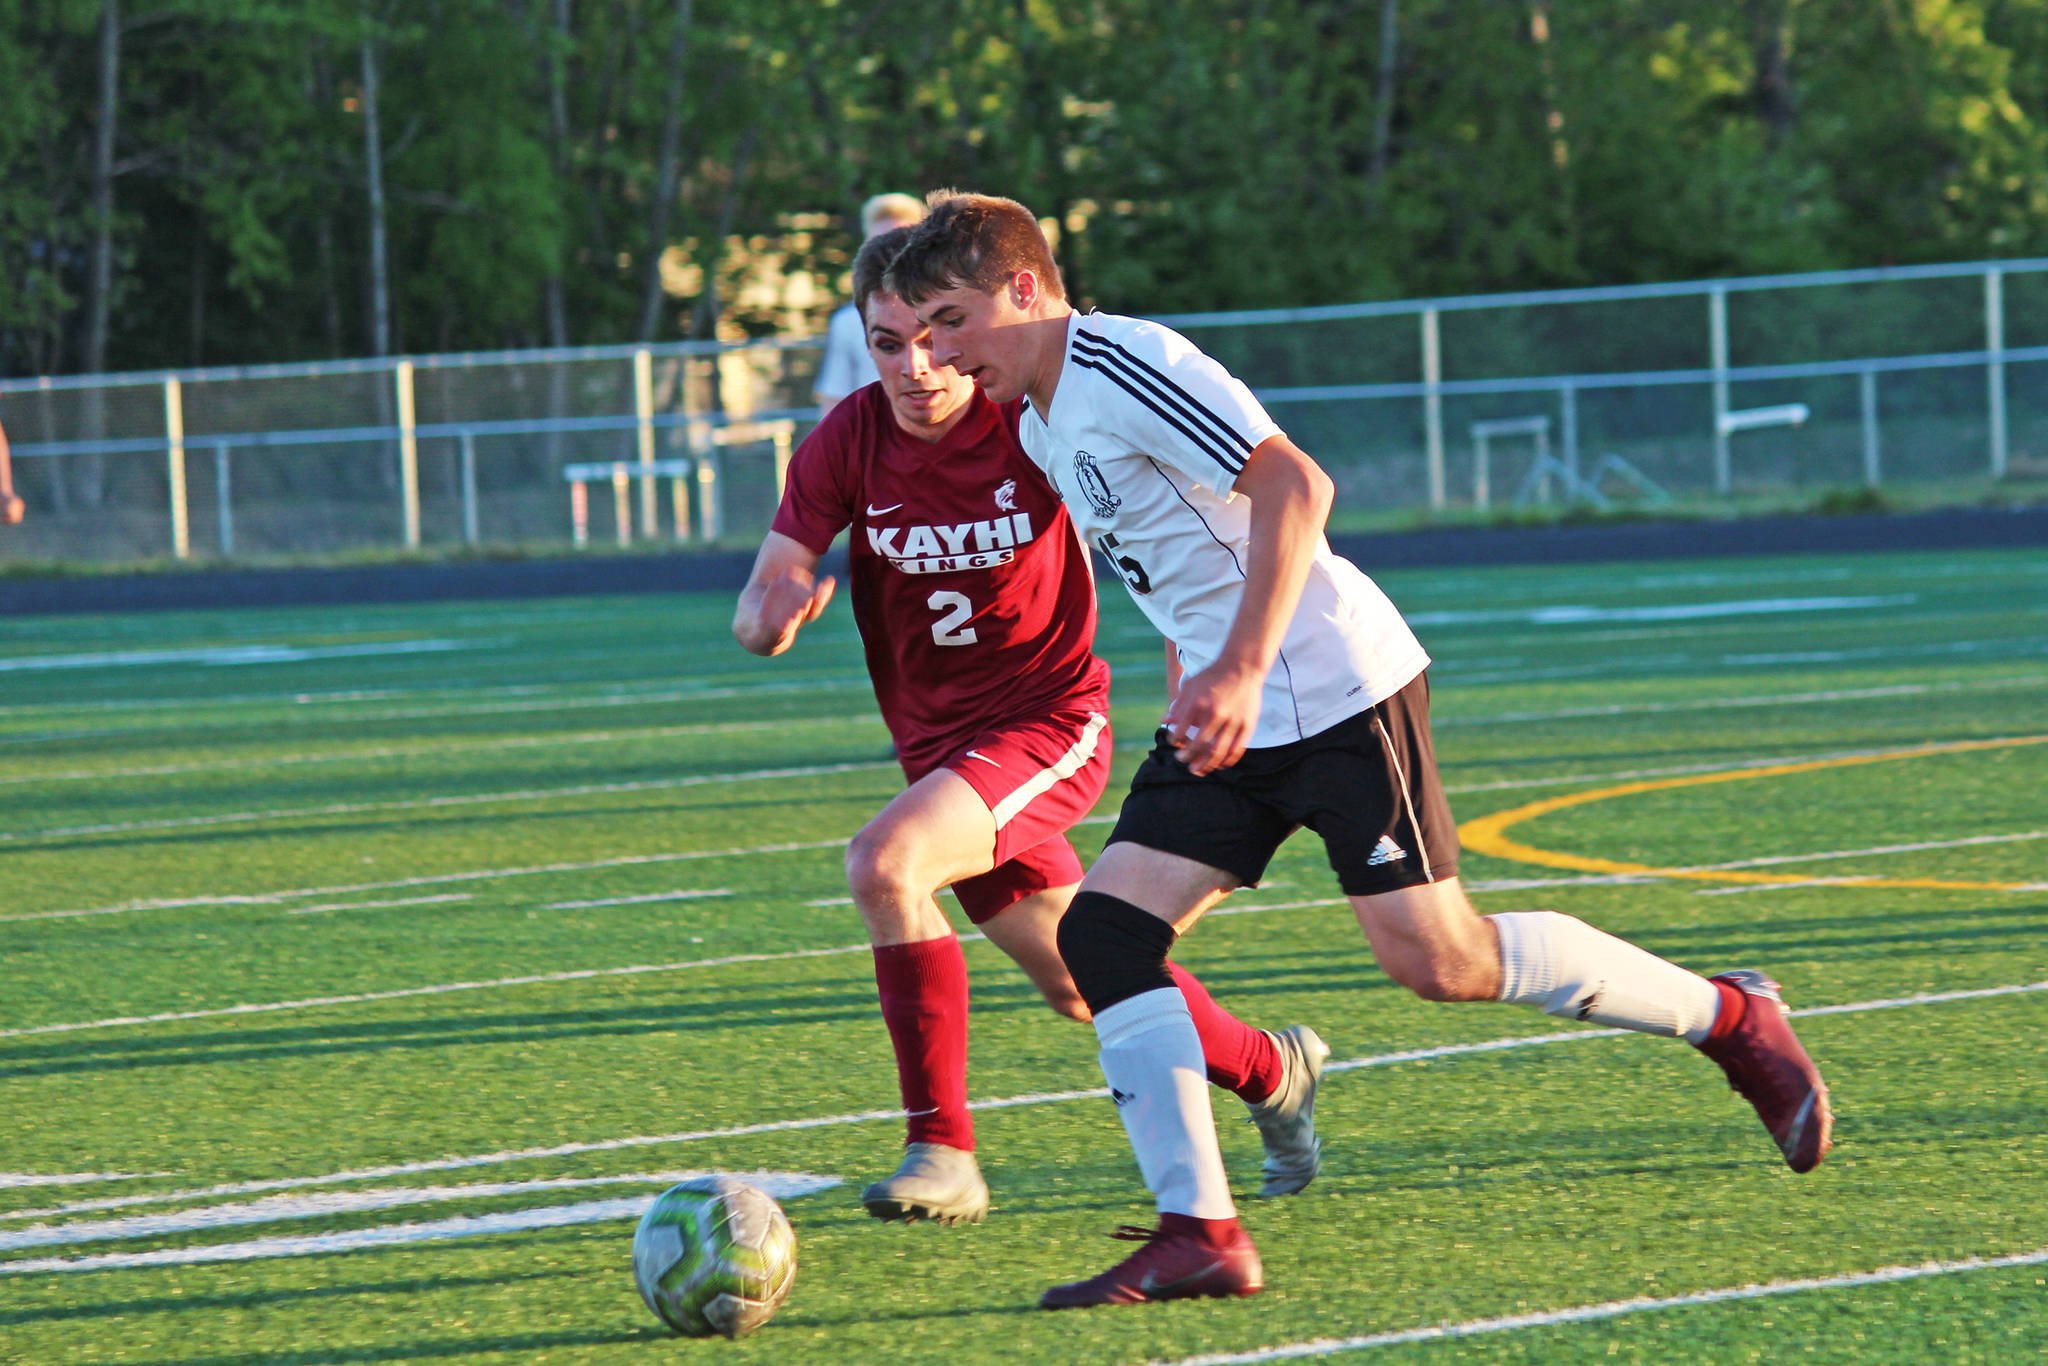 Ketchikan's Jake Taylor (left) and Kenai's Tucker Vann race to the ball during a Friday, May 24, 2019 semifinal match in the Division II state soccer championships at West Anchorage High School in Anchorage, Alaska. (Photo by Megan Pacer/Homer News)